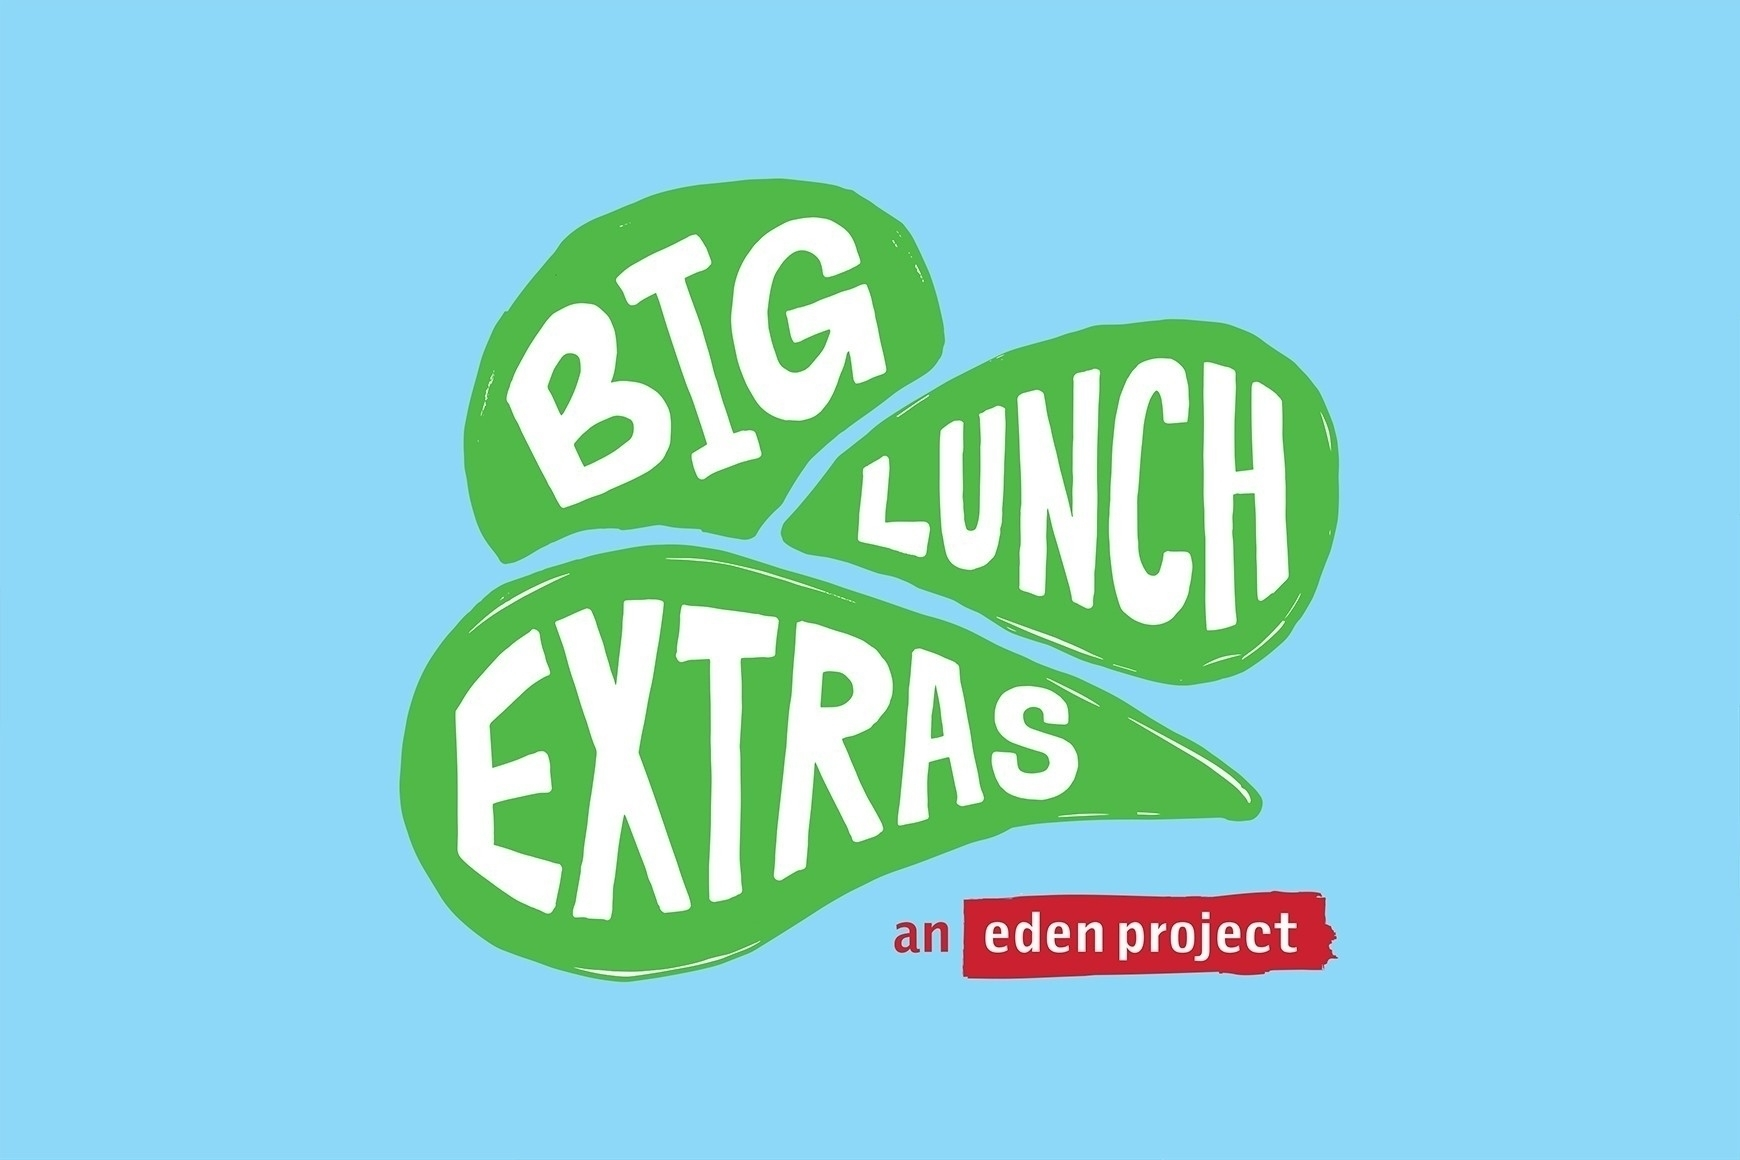 Eden-Big-Lunch-Extras_01.jpg